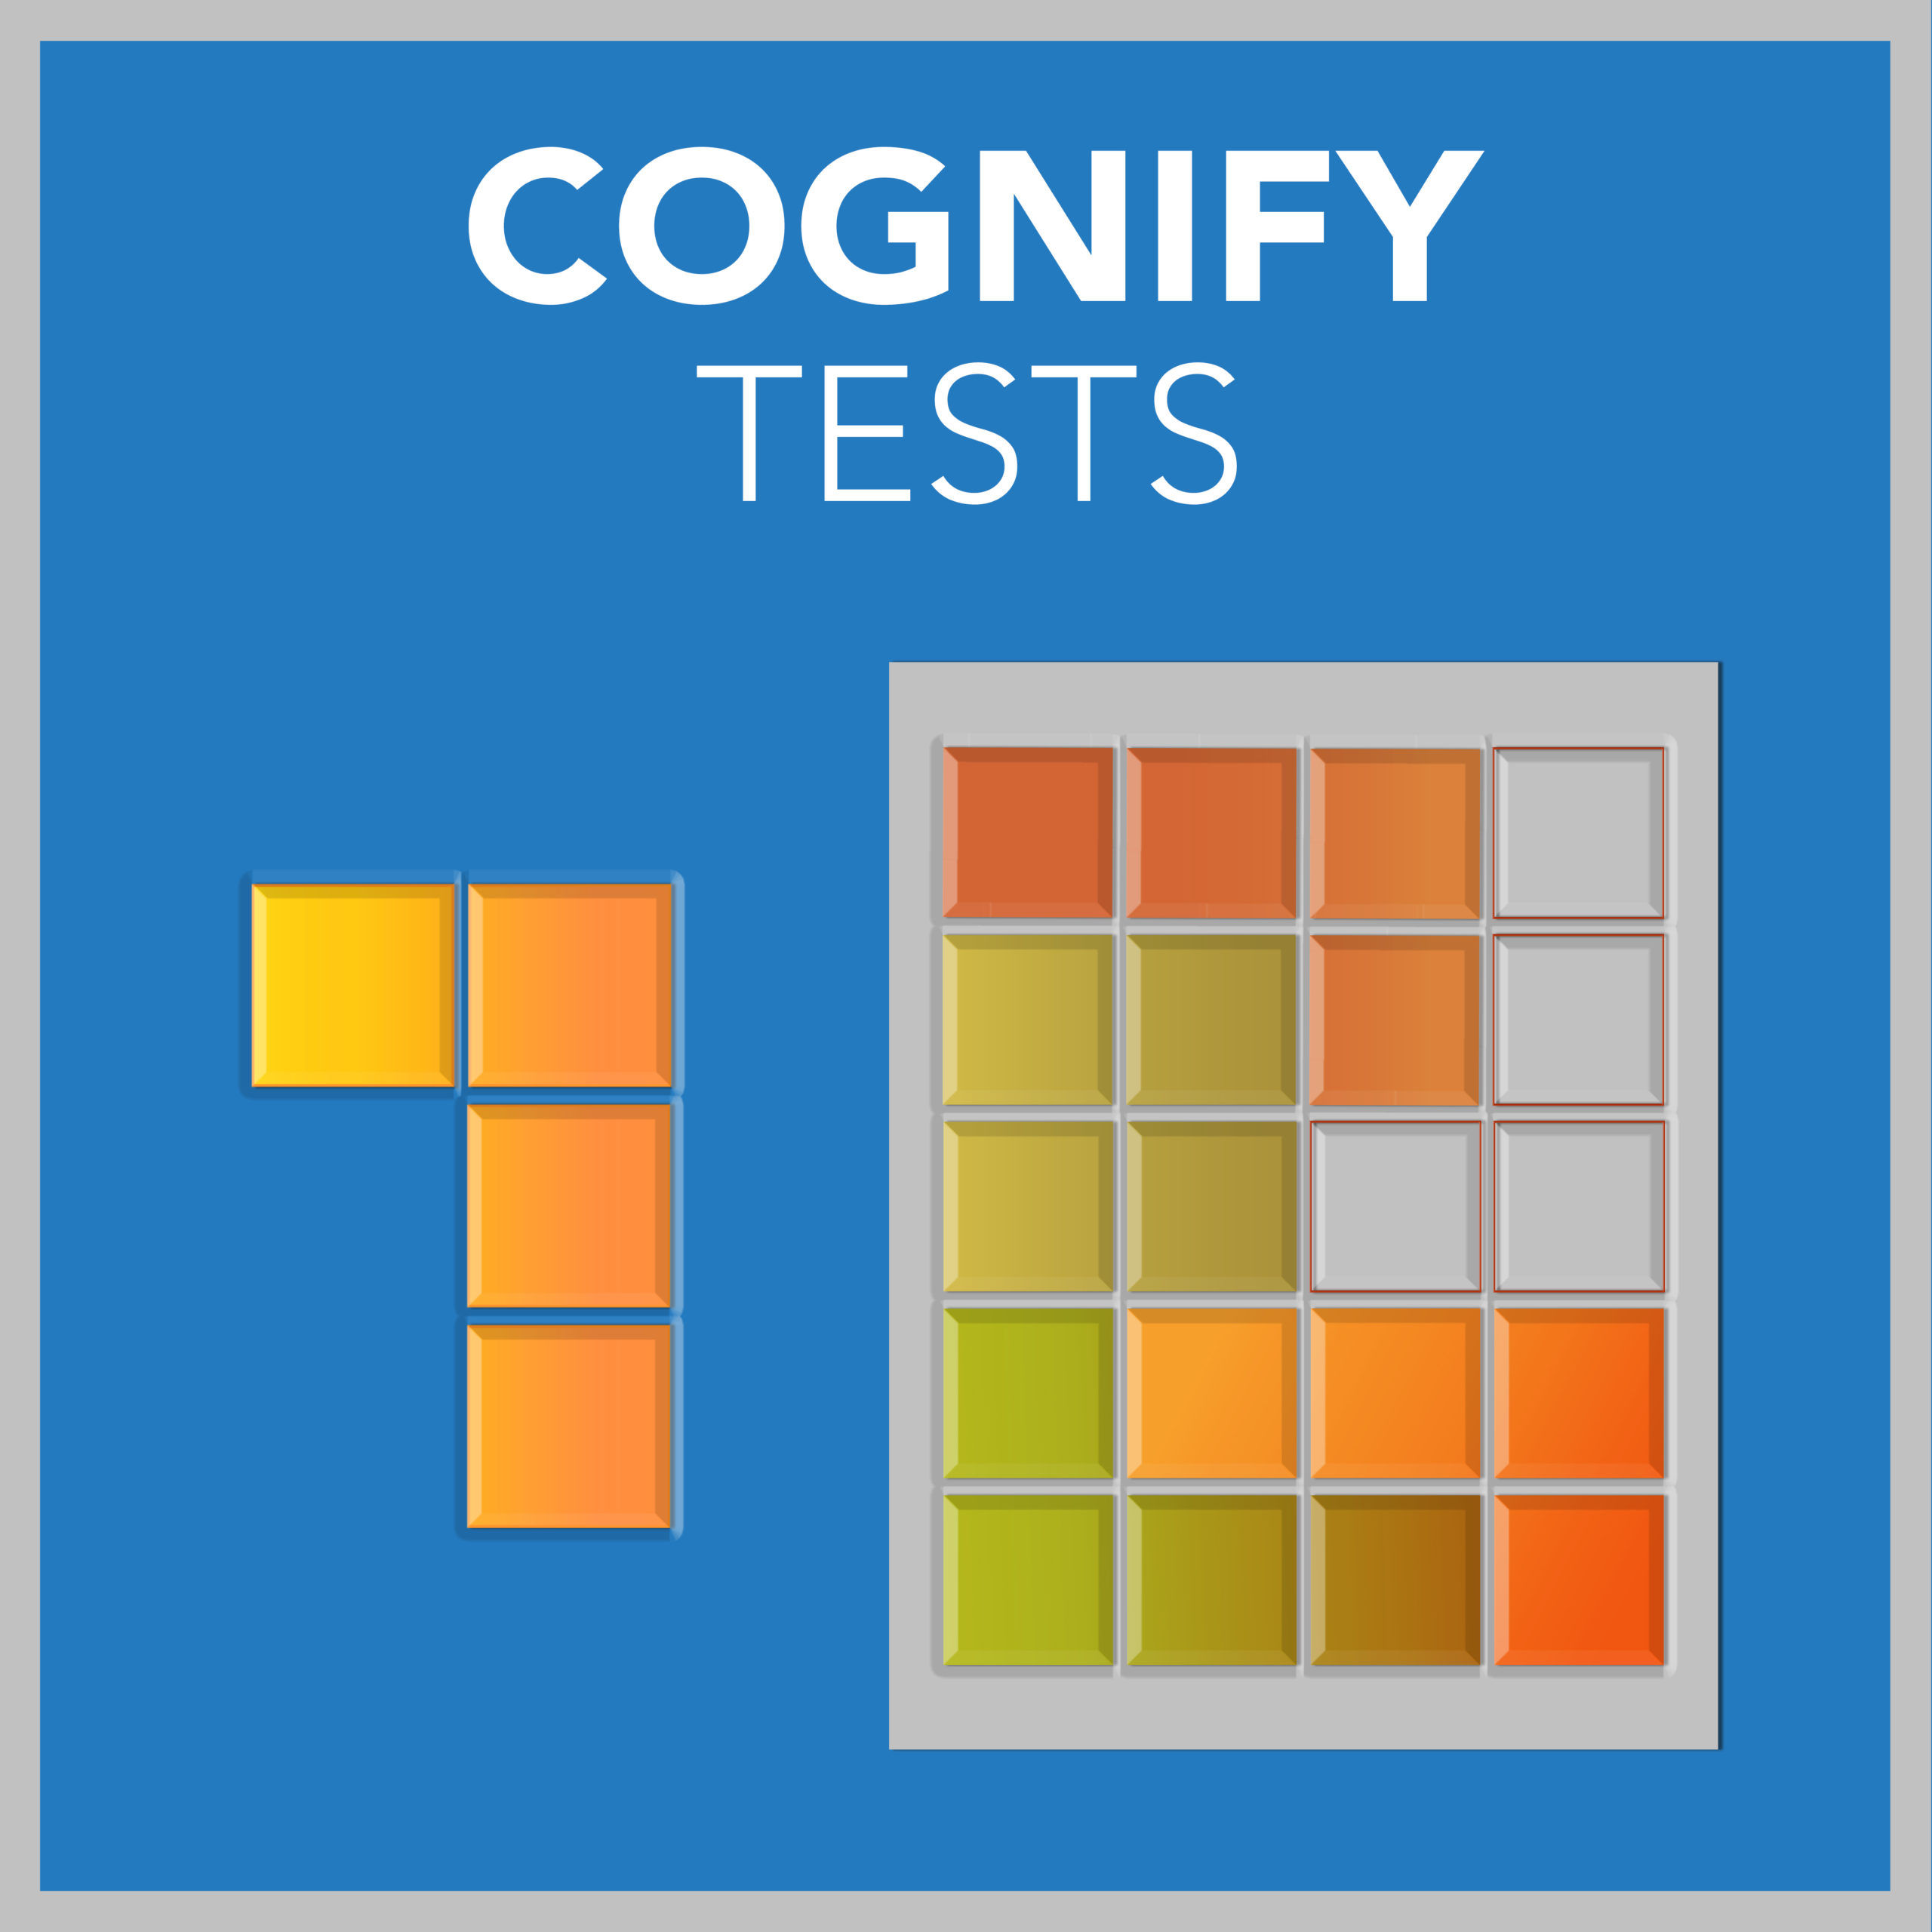 Cognify Tests: Game Based Assessments Explained